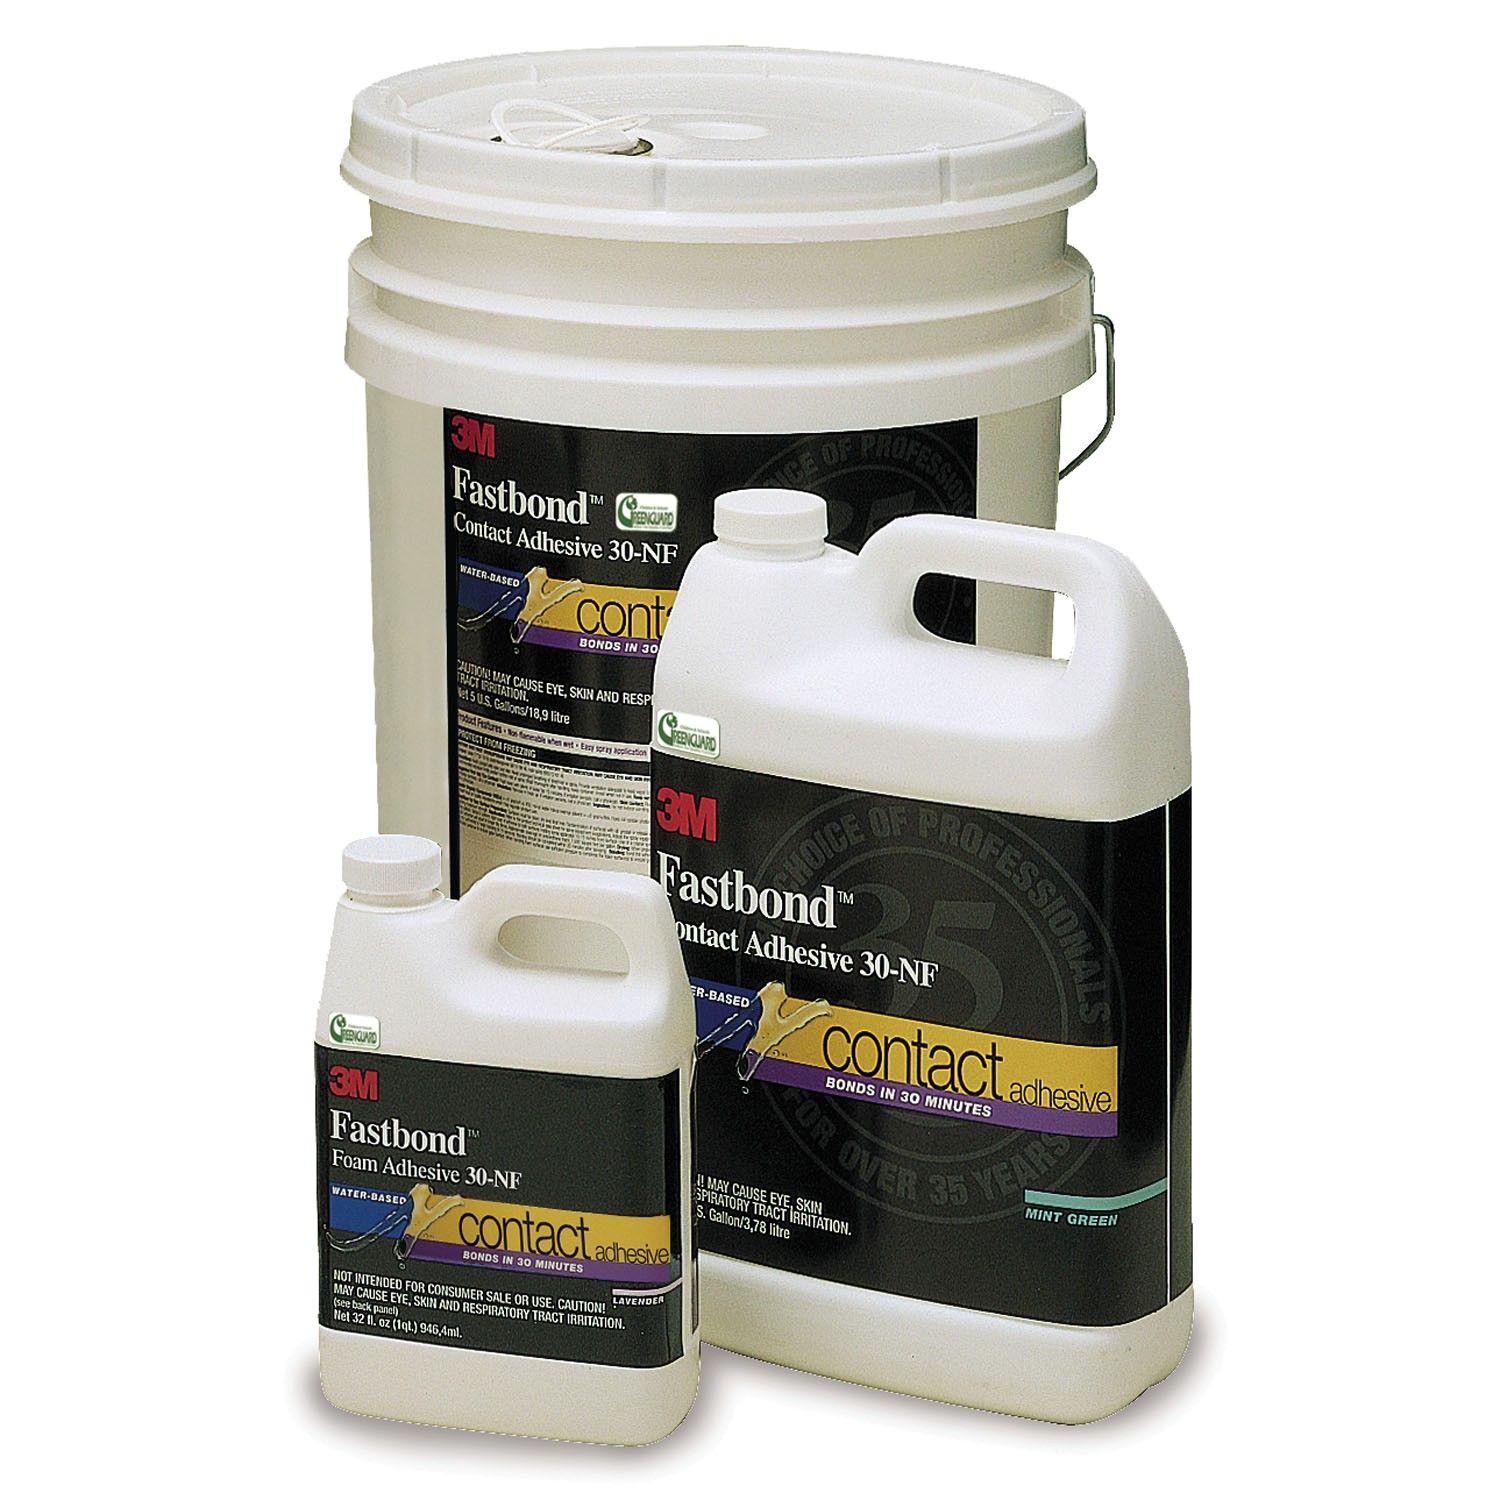 3M Fastbond Contact Adhesive 30NF creates a very high